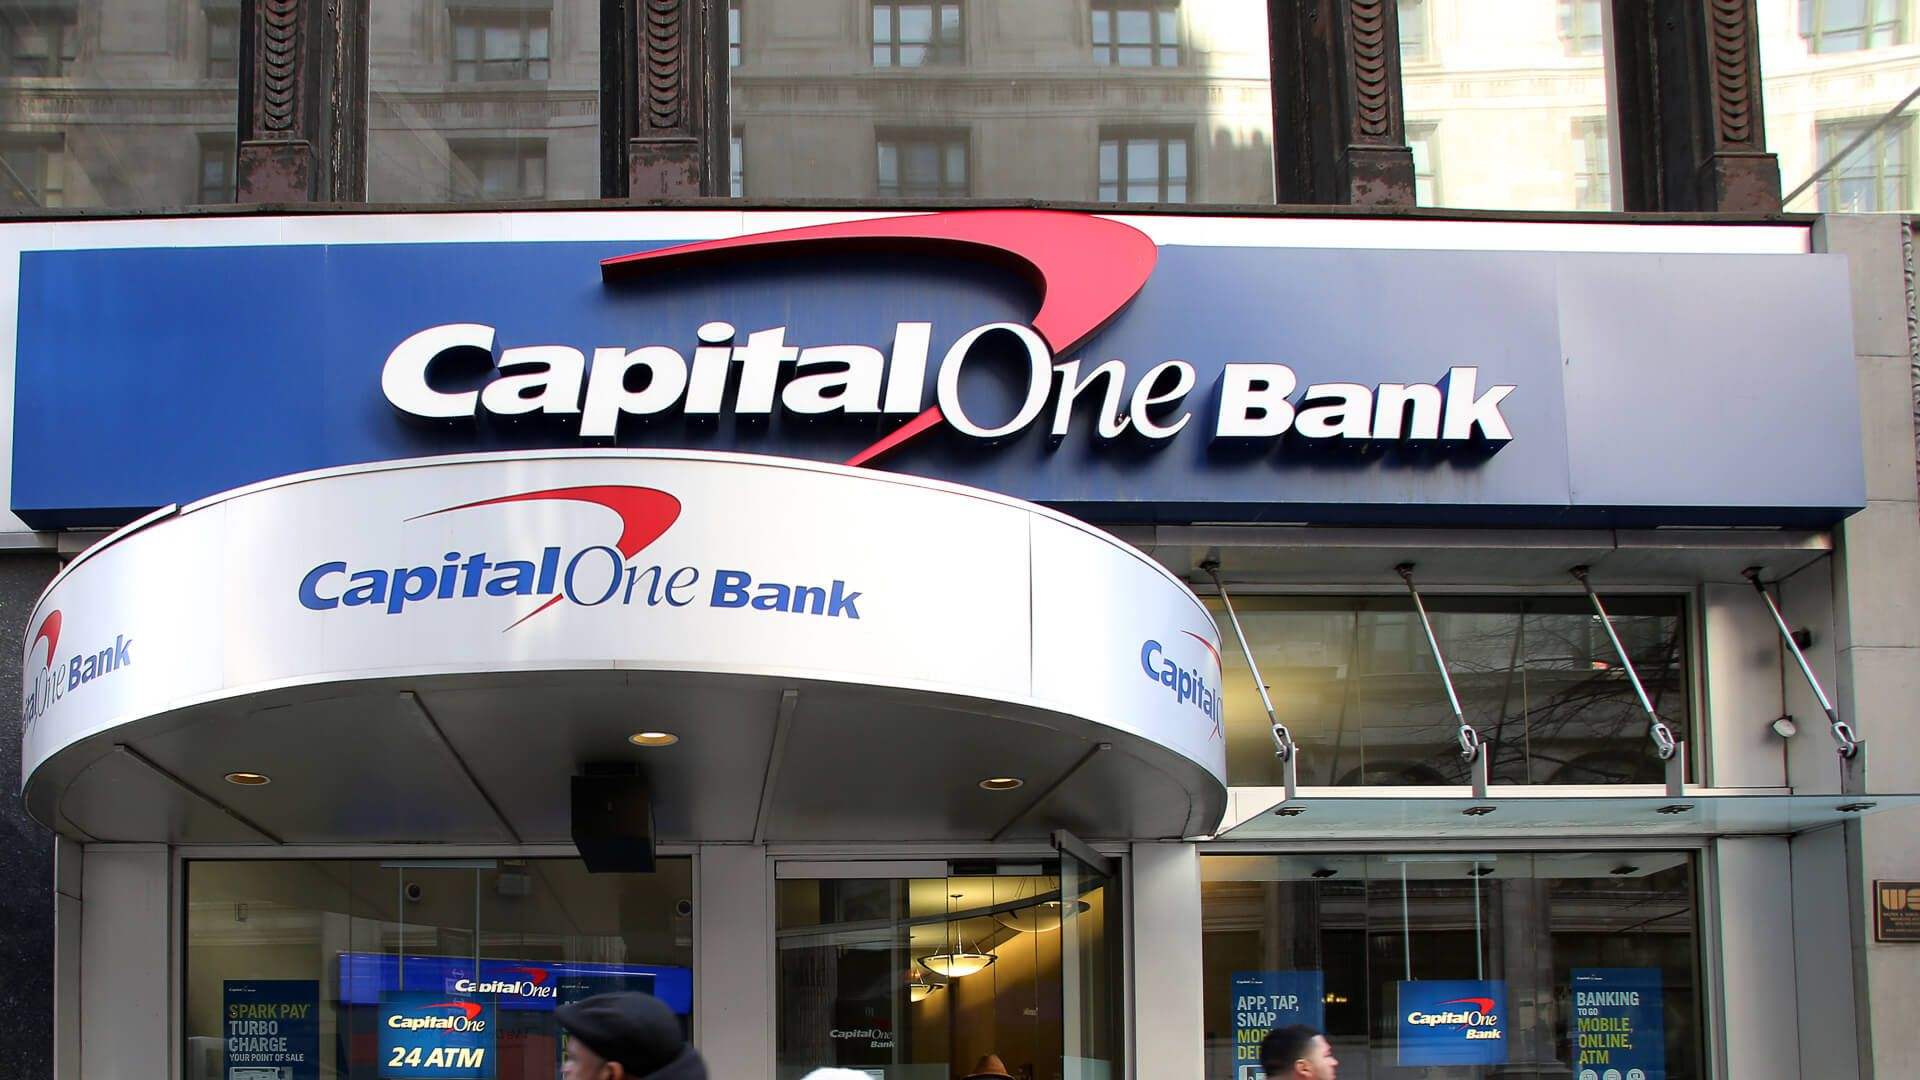 Capital One Bank Near Me: Find Branch Locations and ATMs Nearby